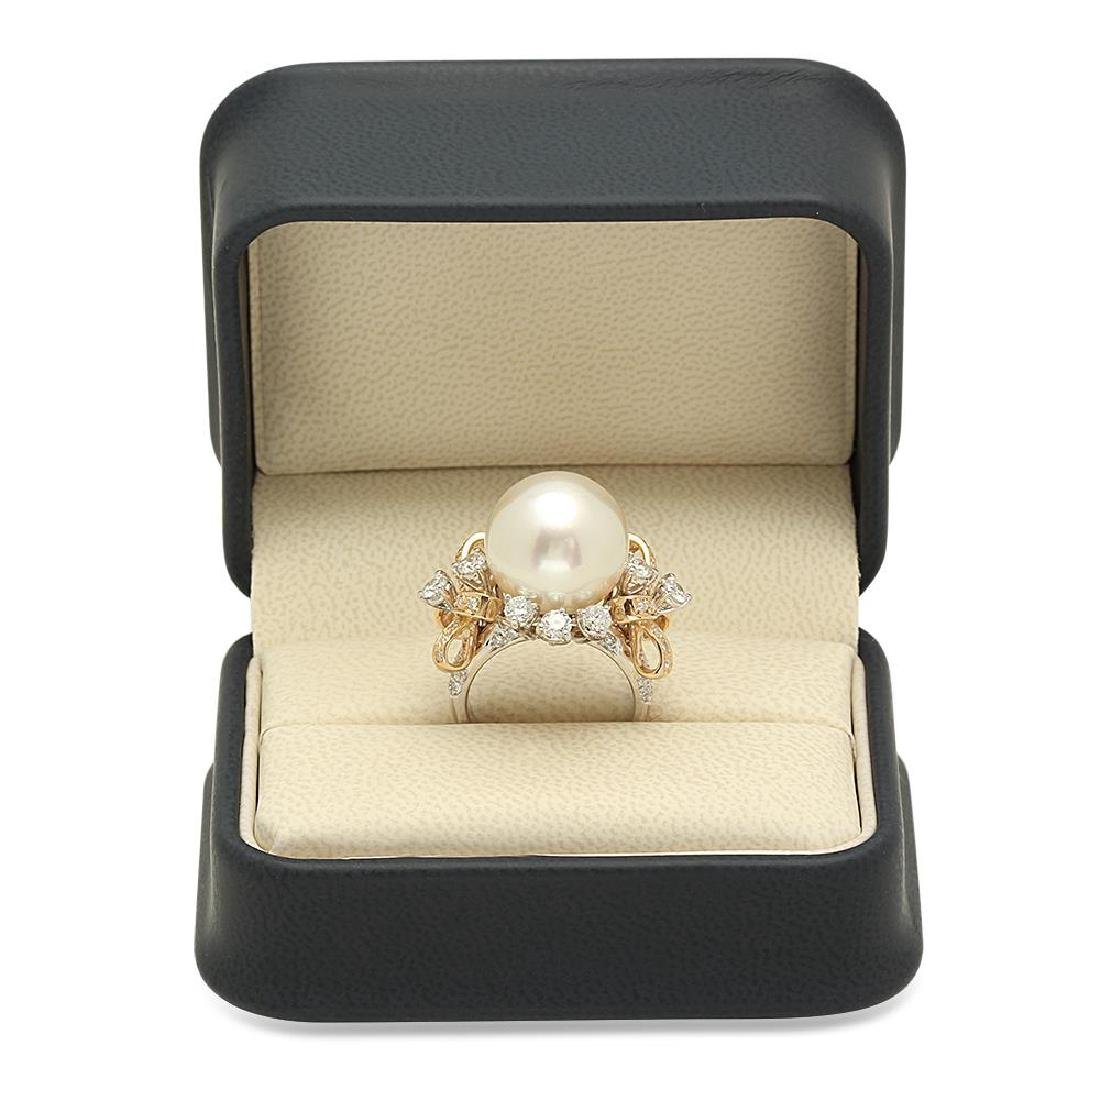 14K Gold 15mm South Sea Pearl 2.26cts Diamond Ring - 4